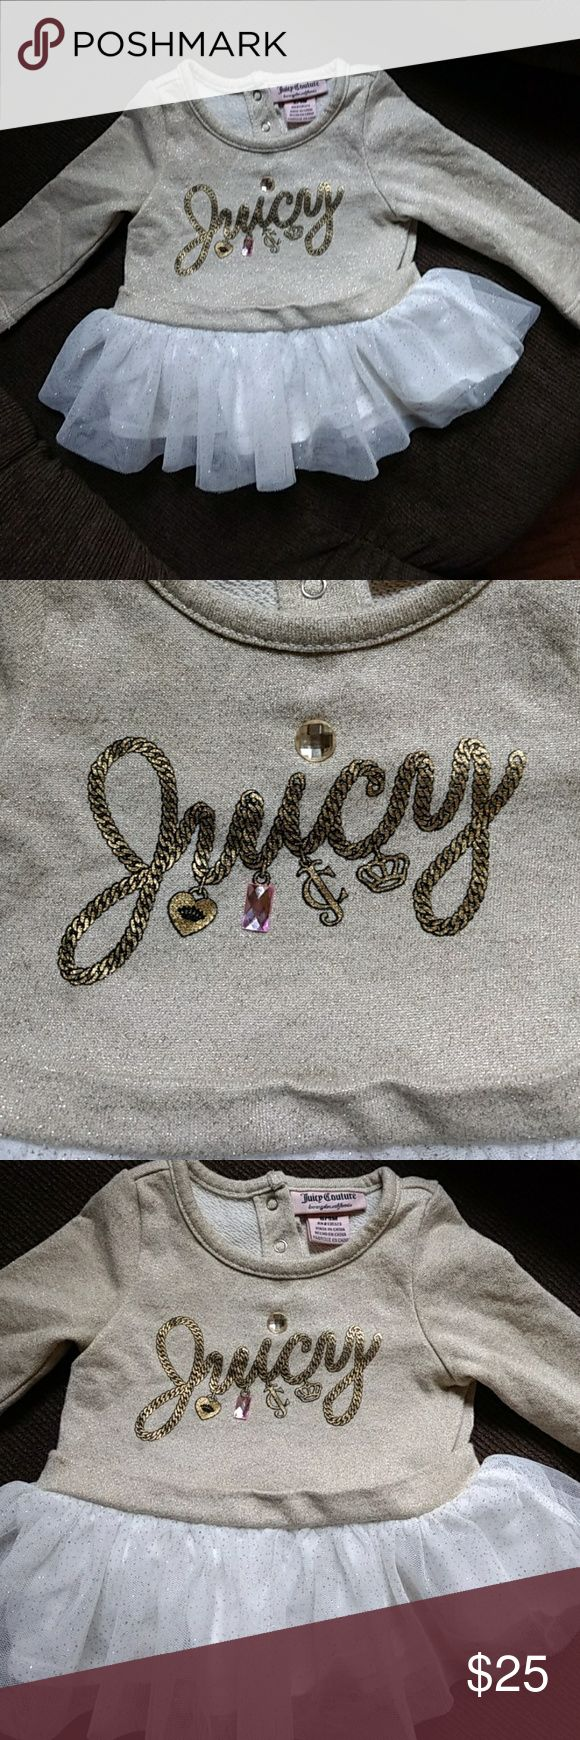 """*Juicy Couture Baby """"$25- OBO ADORABLE Juicy Couture Baby Tunic Dress Gold and White With Bling and attached Tutu Size 6/9 Months EUC Asking Only $25 OBO Juicy Couture Dresses"""